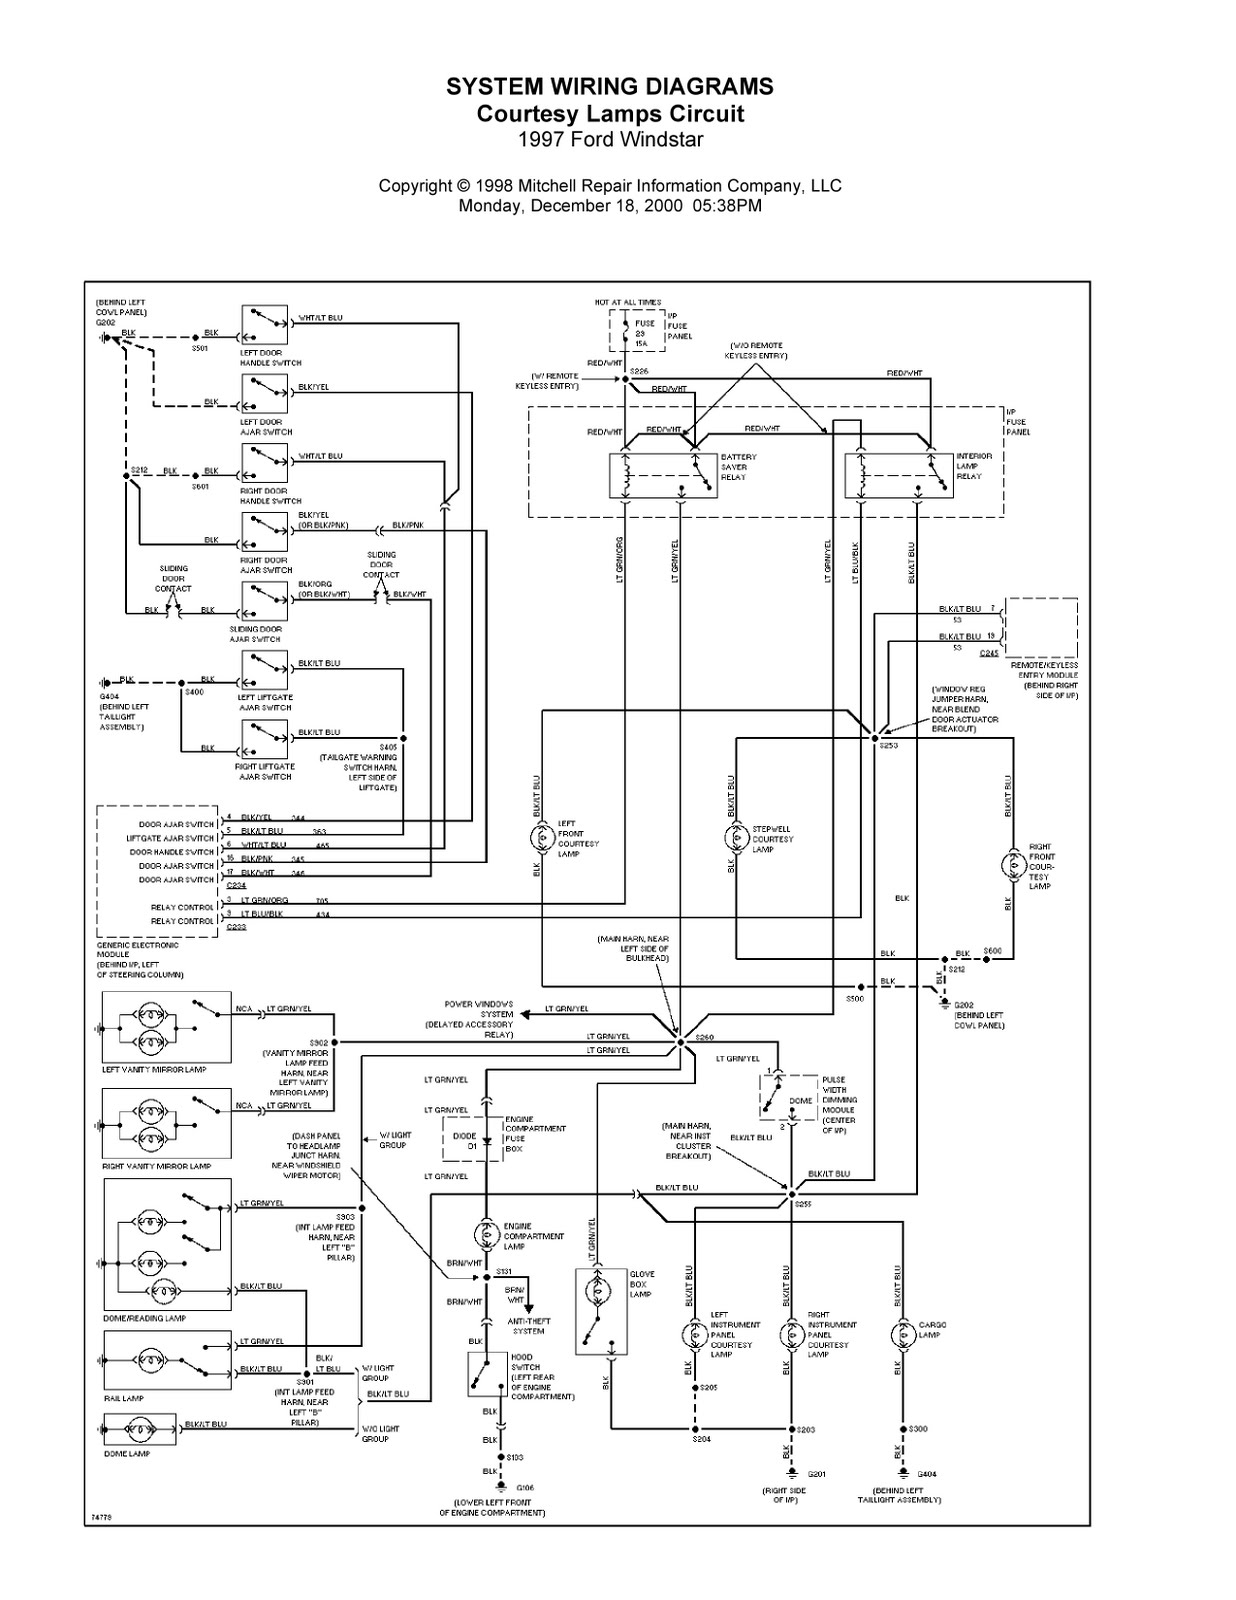 1997 ford windstar complete system wiring diagrams 2000 ford windstar electrical diagram 2001 ford windstar electrical [ 1236 x 1600 Pixel ]